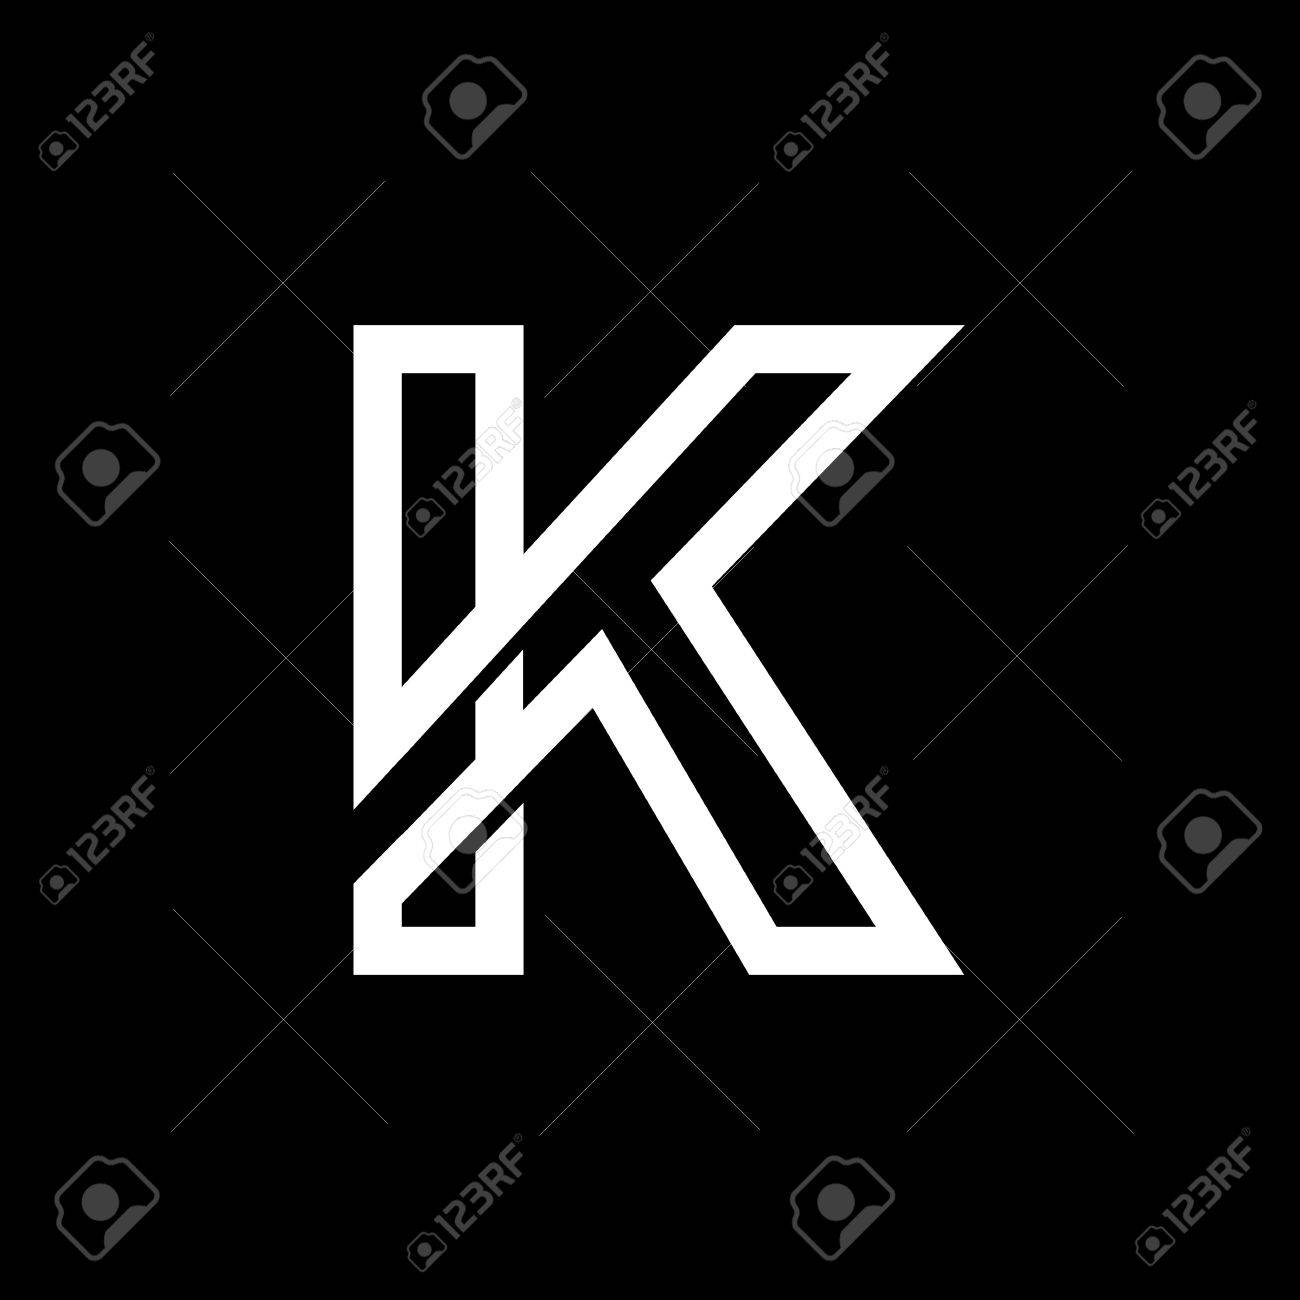 Capital Letter K From The White Interwoven Strips On A Black